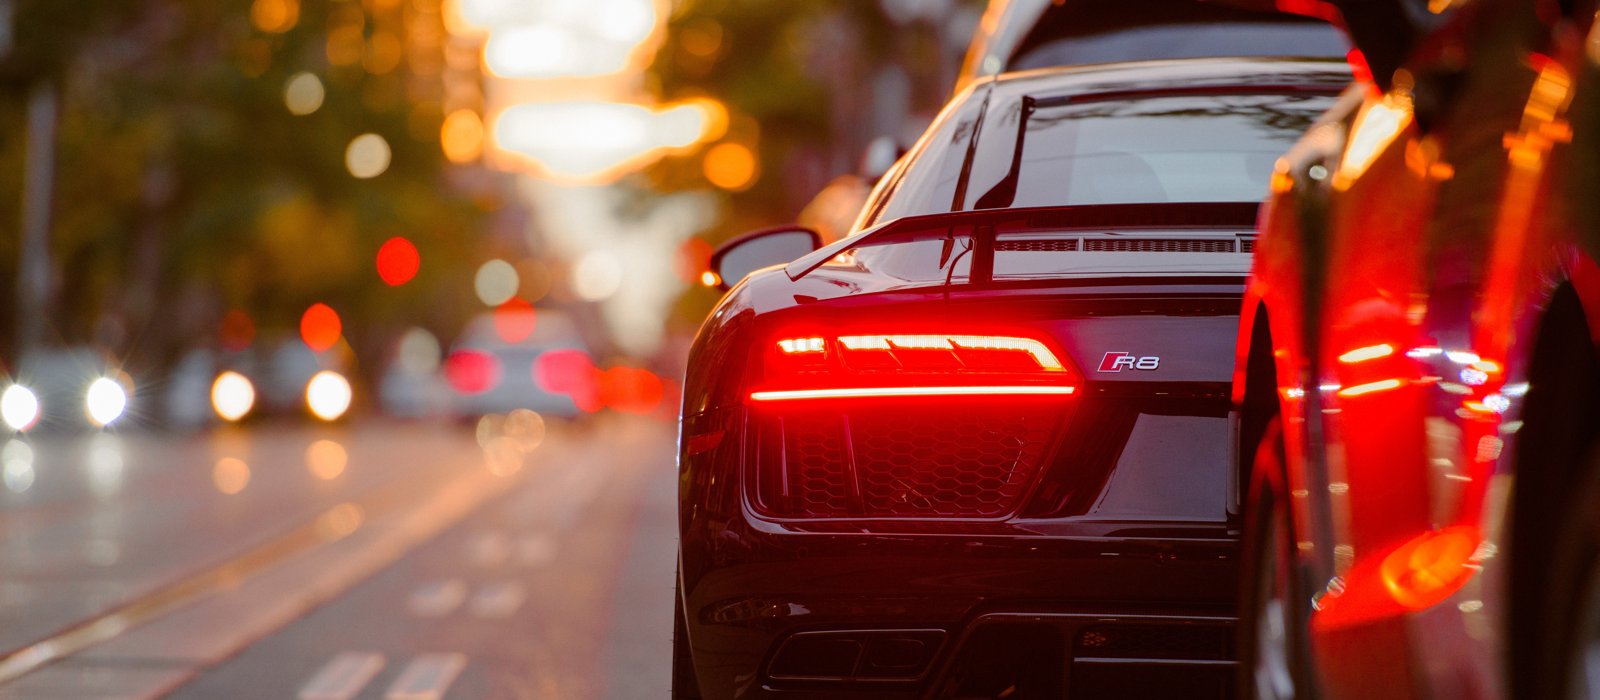 Photo of rear passenger side of black Audi R8, break lights on with blurred background.